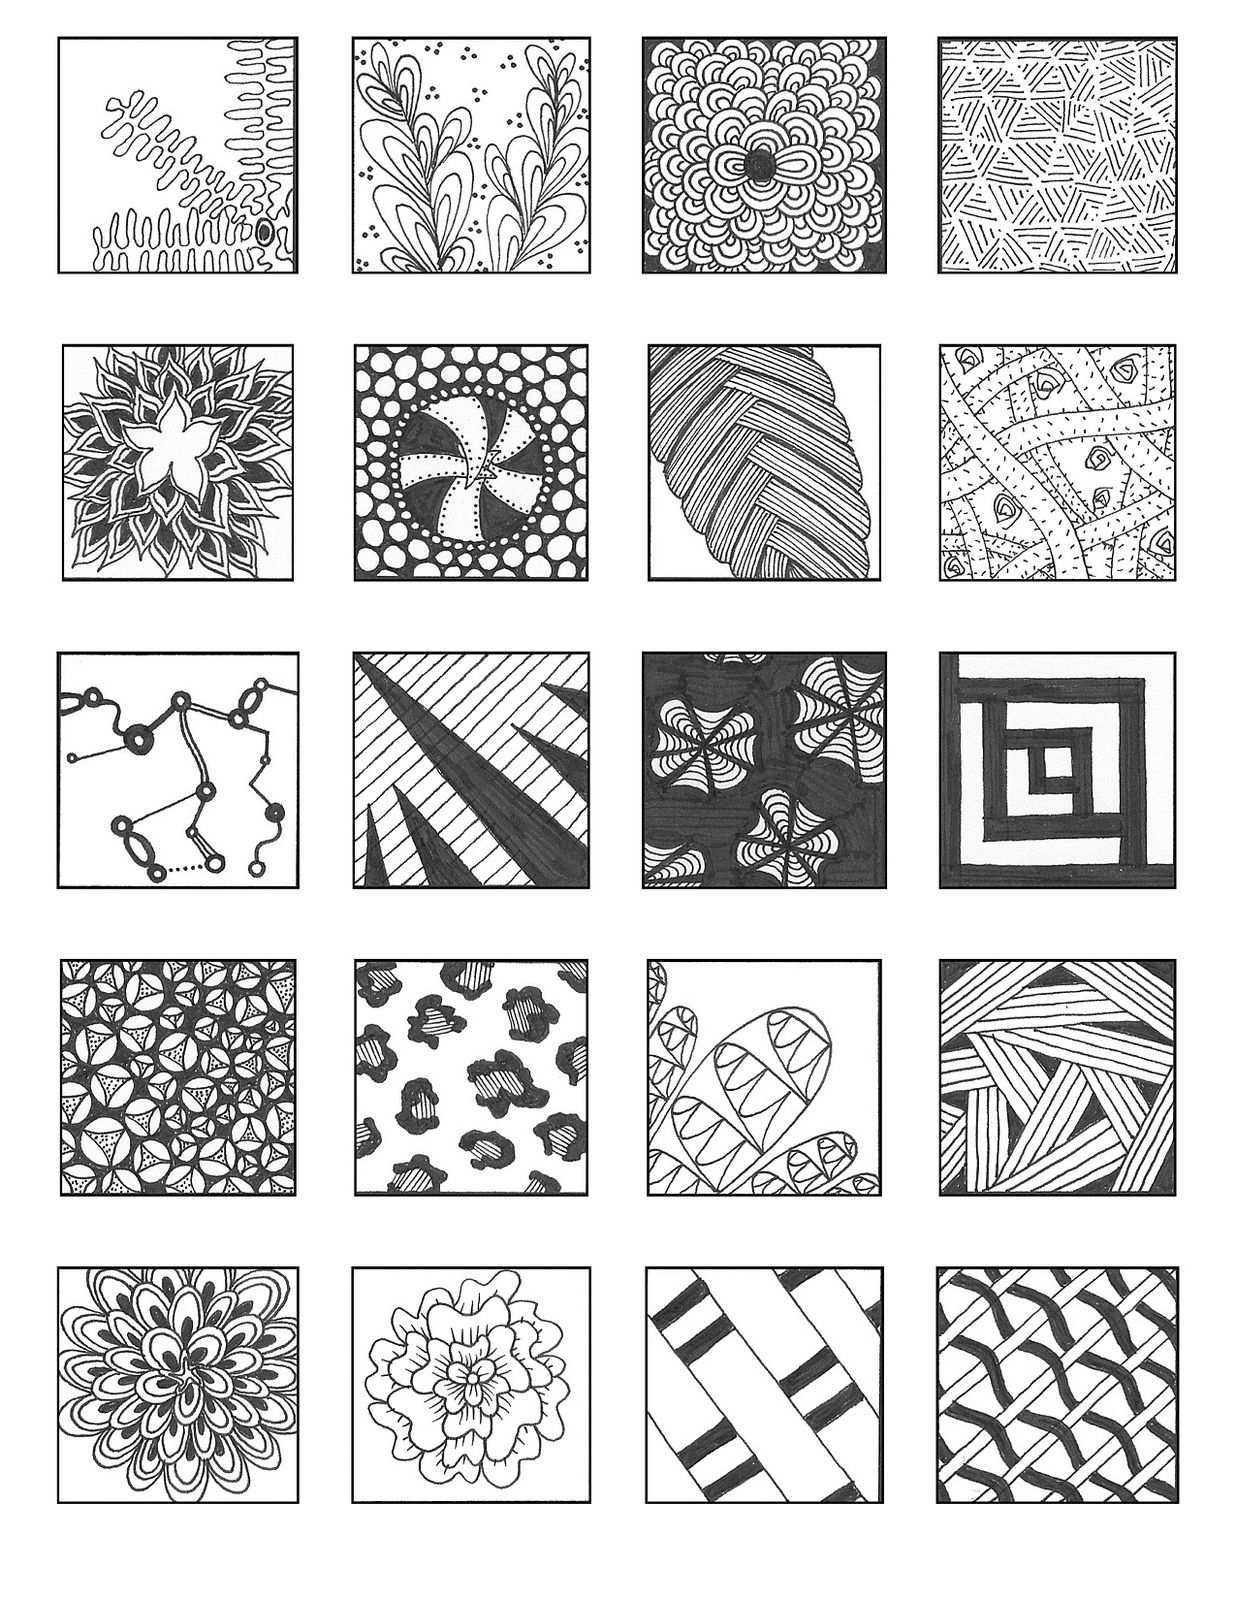 Noncat 9 Zentangle Patterns Tangle Patterns Doodle Patterns